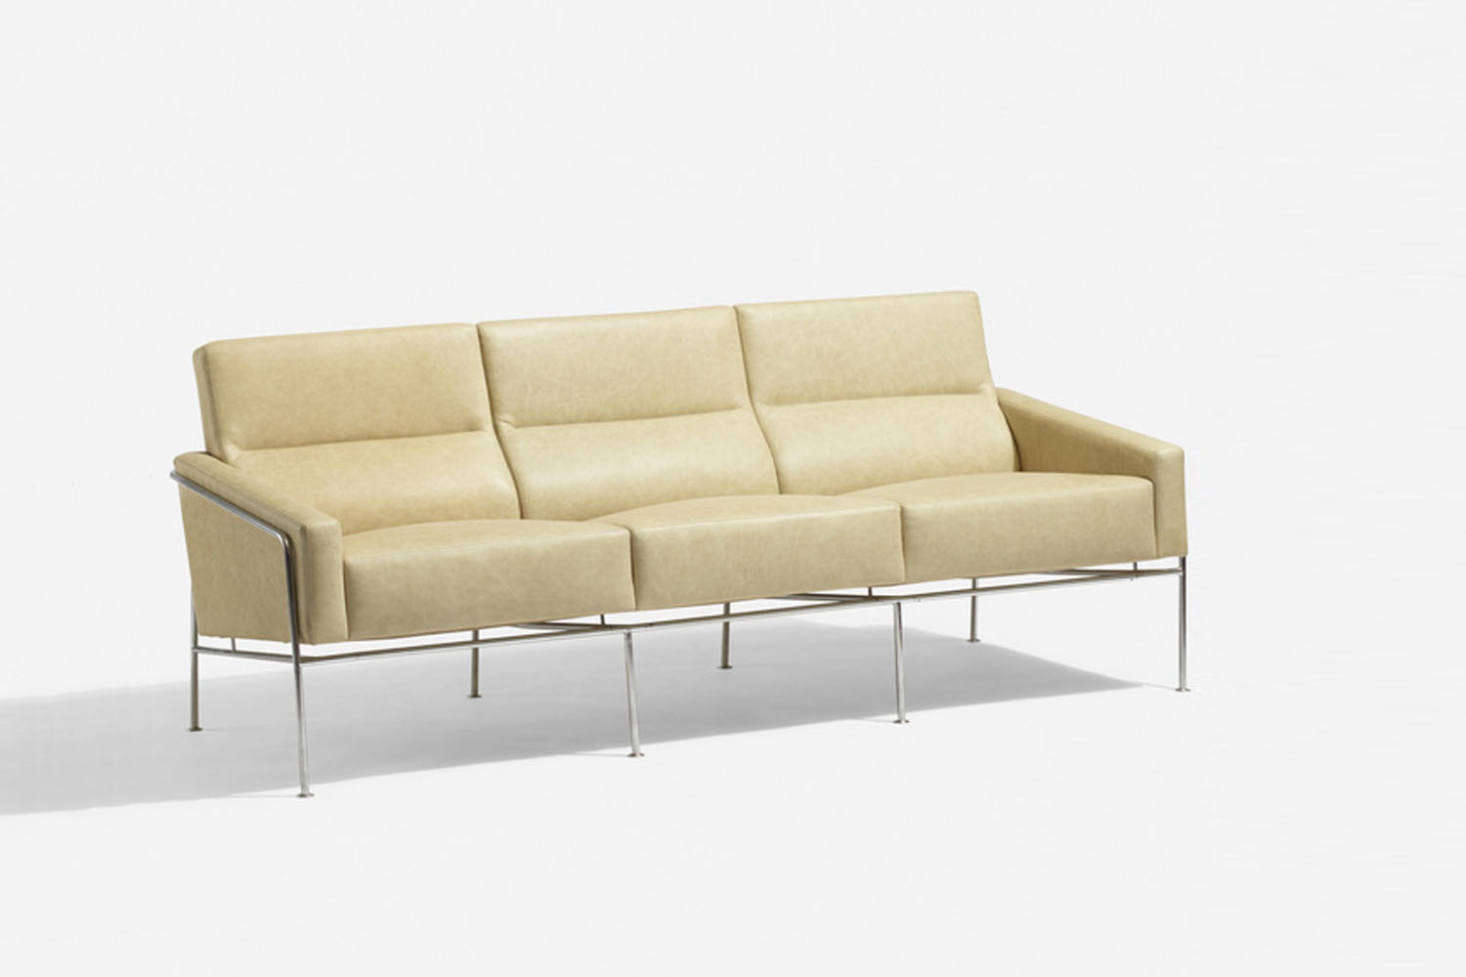 Danish architect and designer Arne Jacobsen, the Series 3300 Sofa for Fritz Hansen comes as a two or three seat set up; prices start at $8,3 at Design Within Reach.